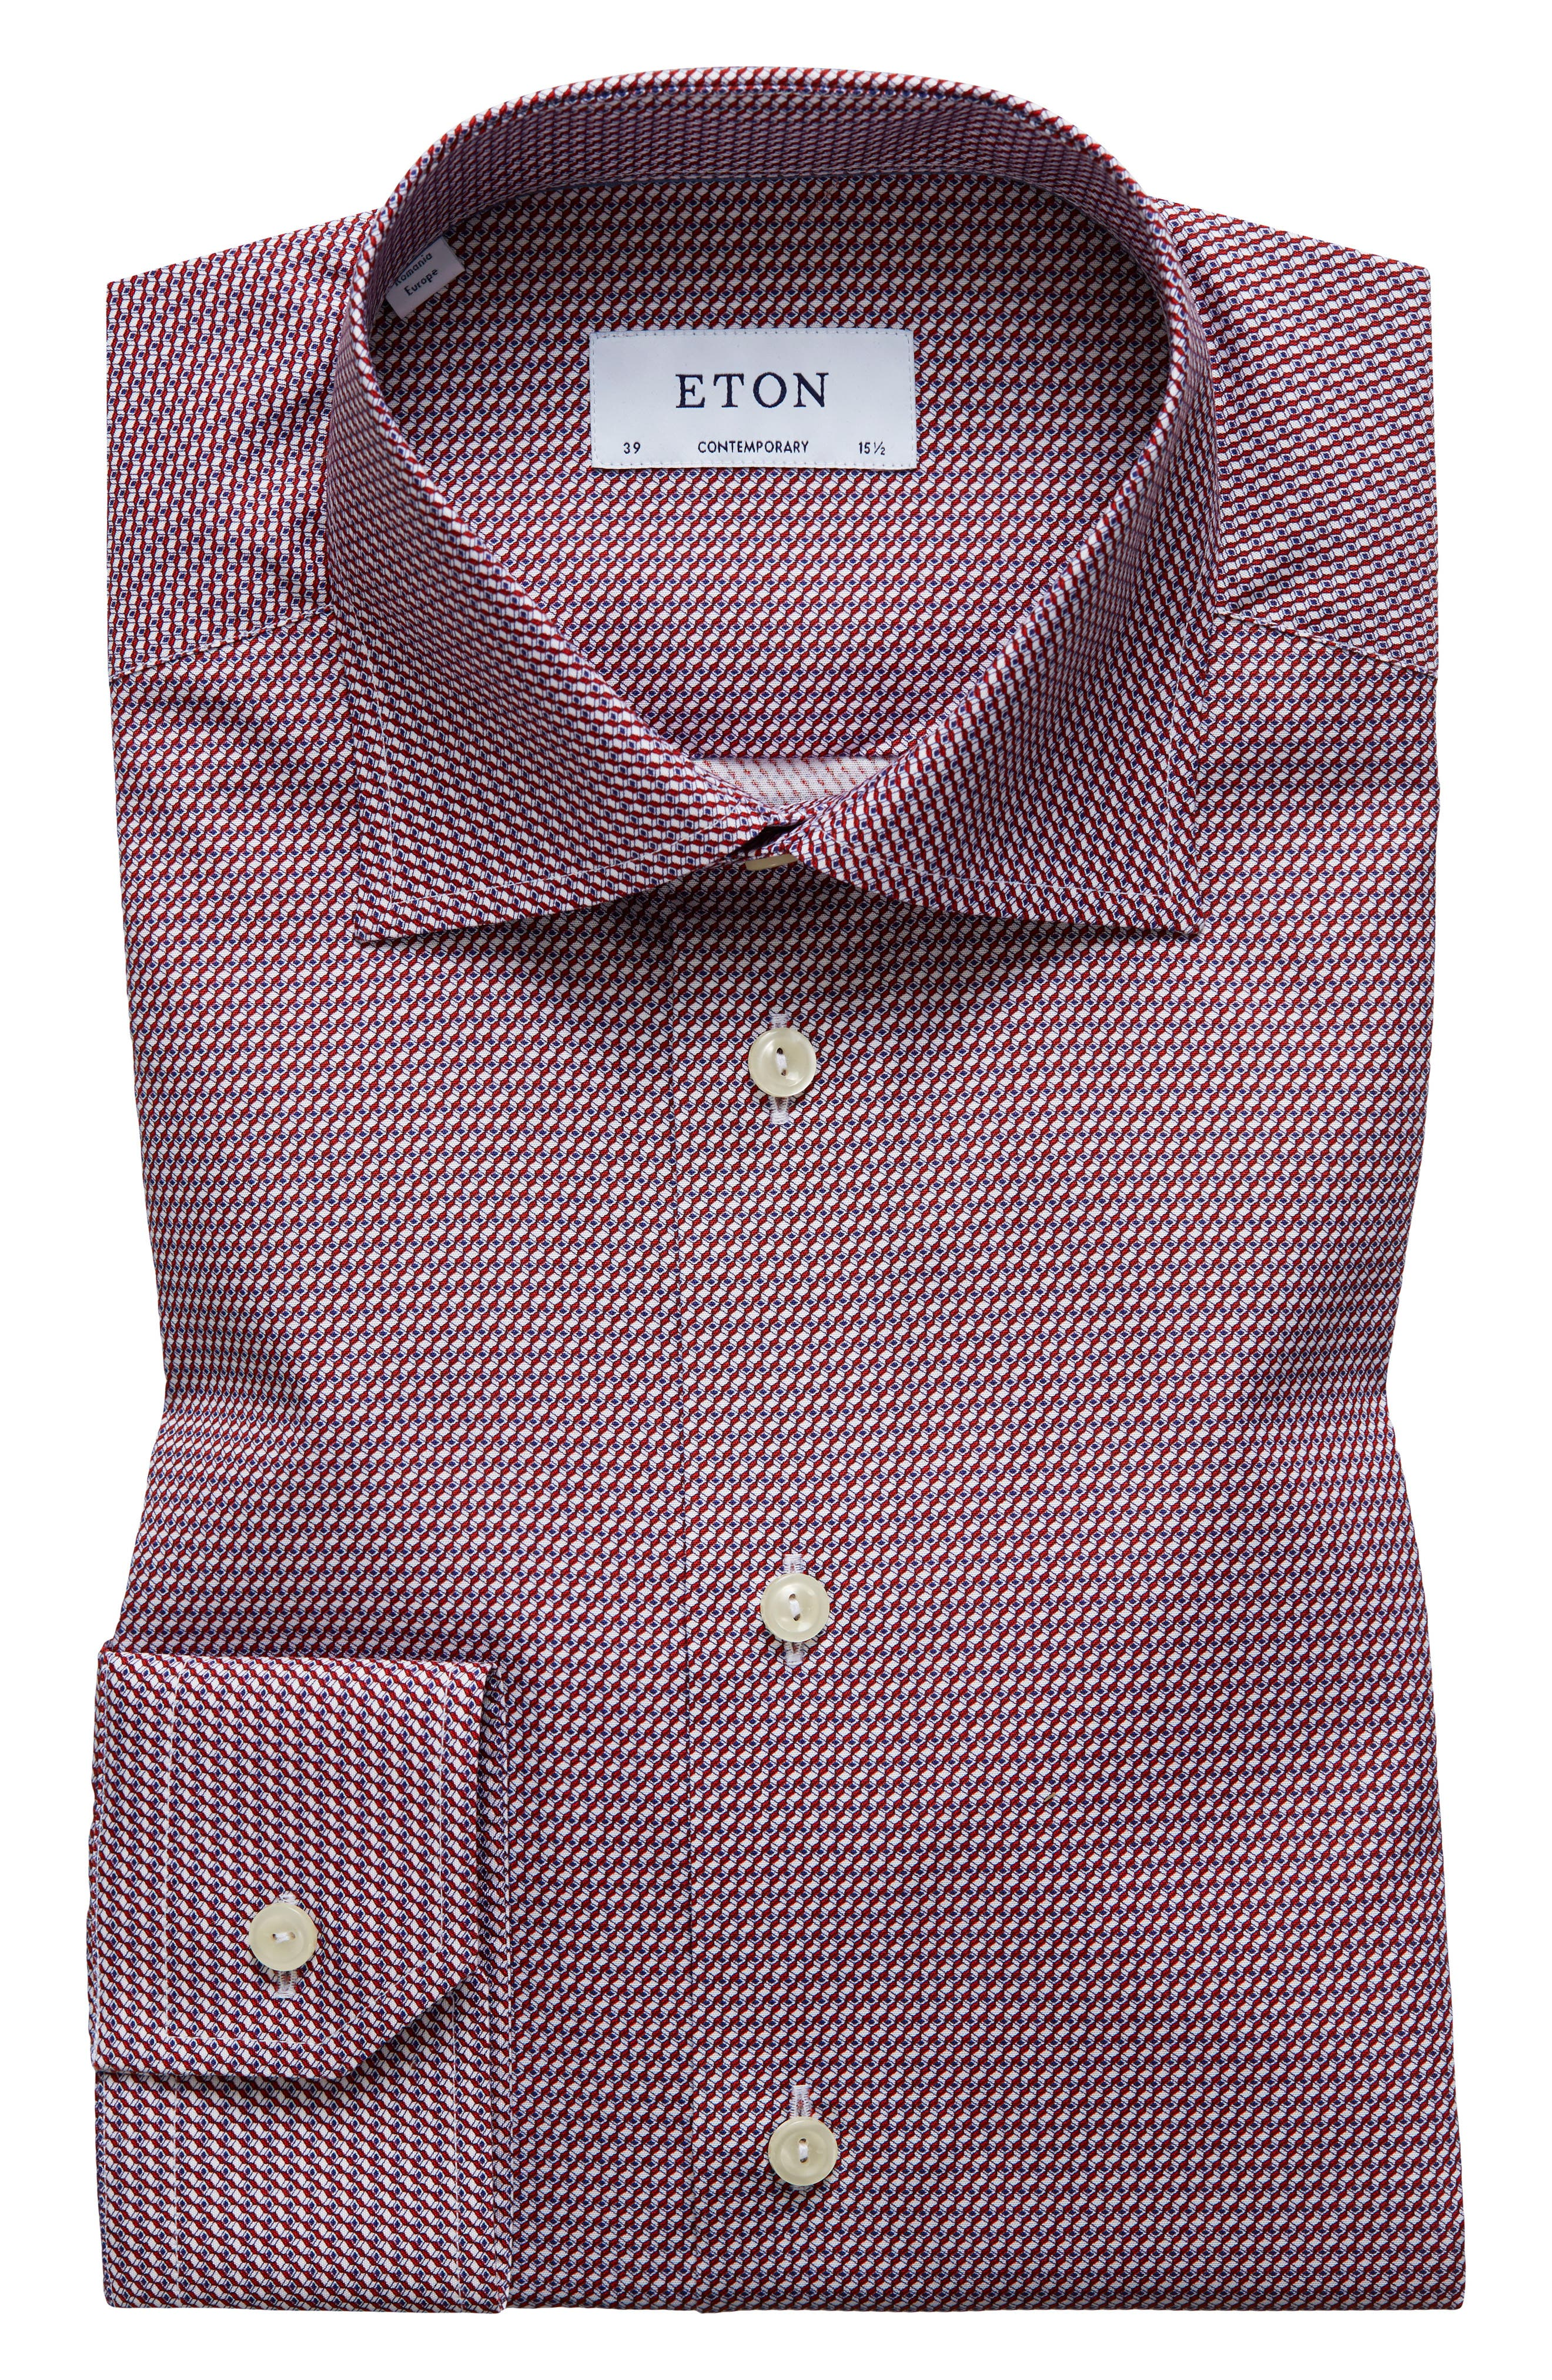 Contemporary Fit Geometric Dress Shirt,                         Main,                         color, Red